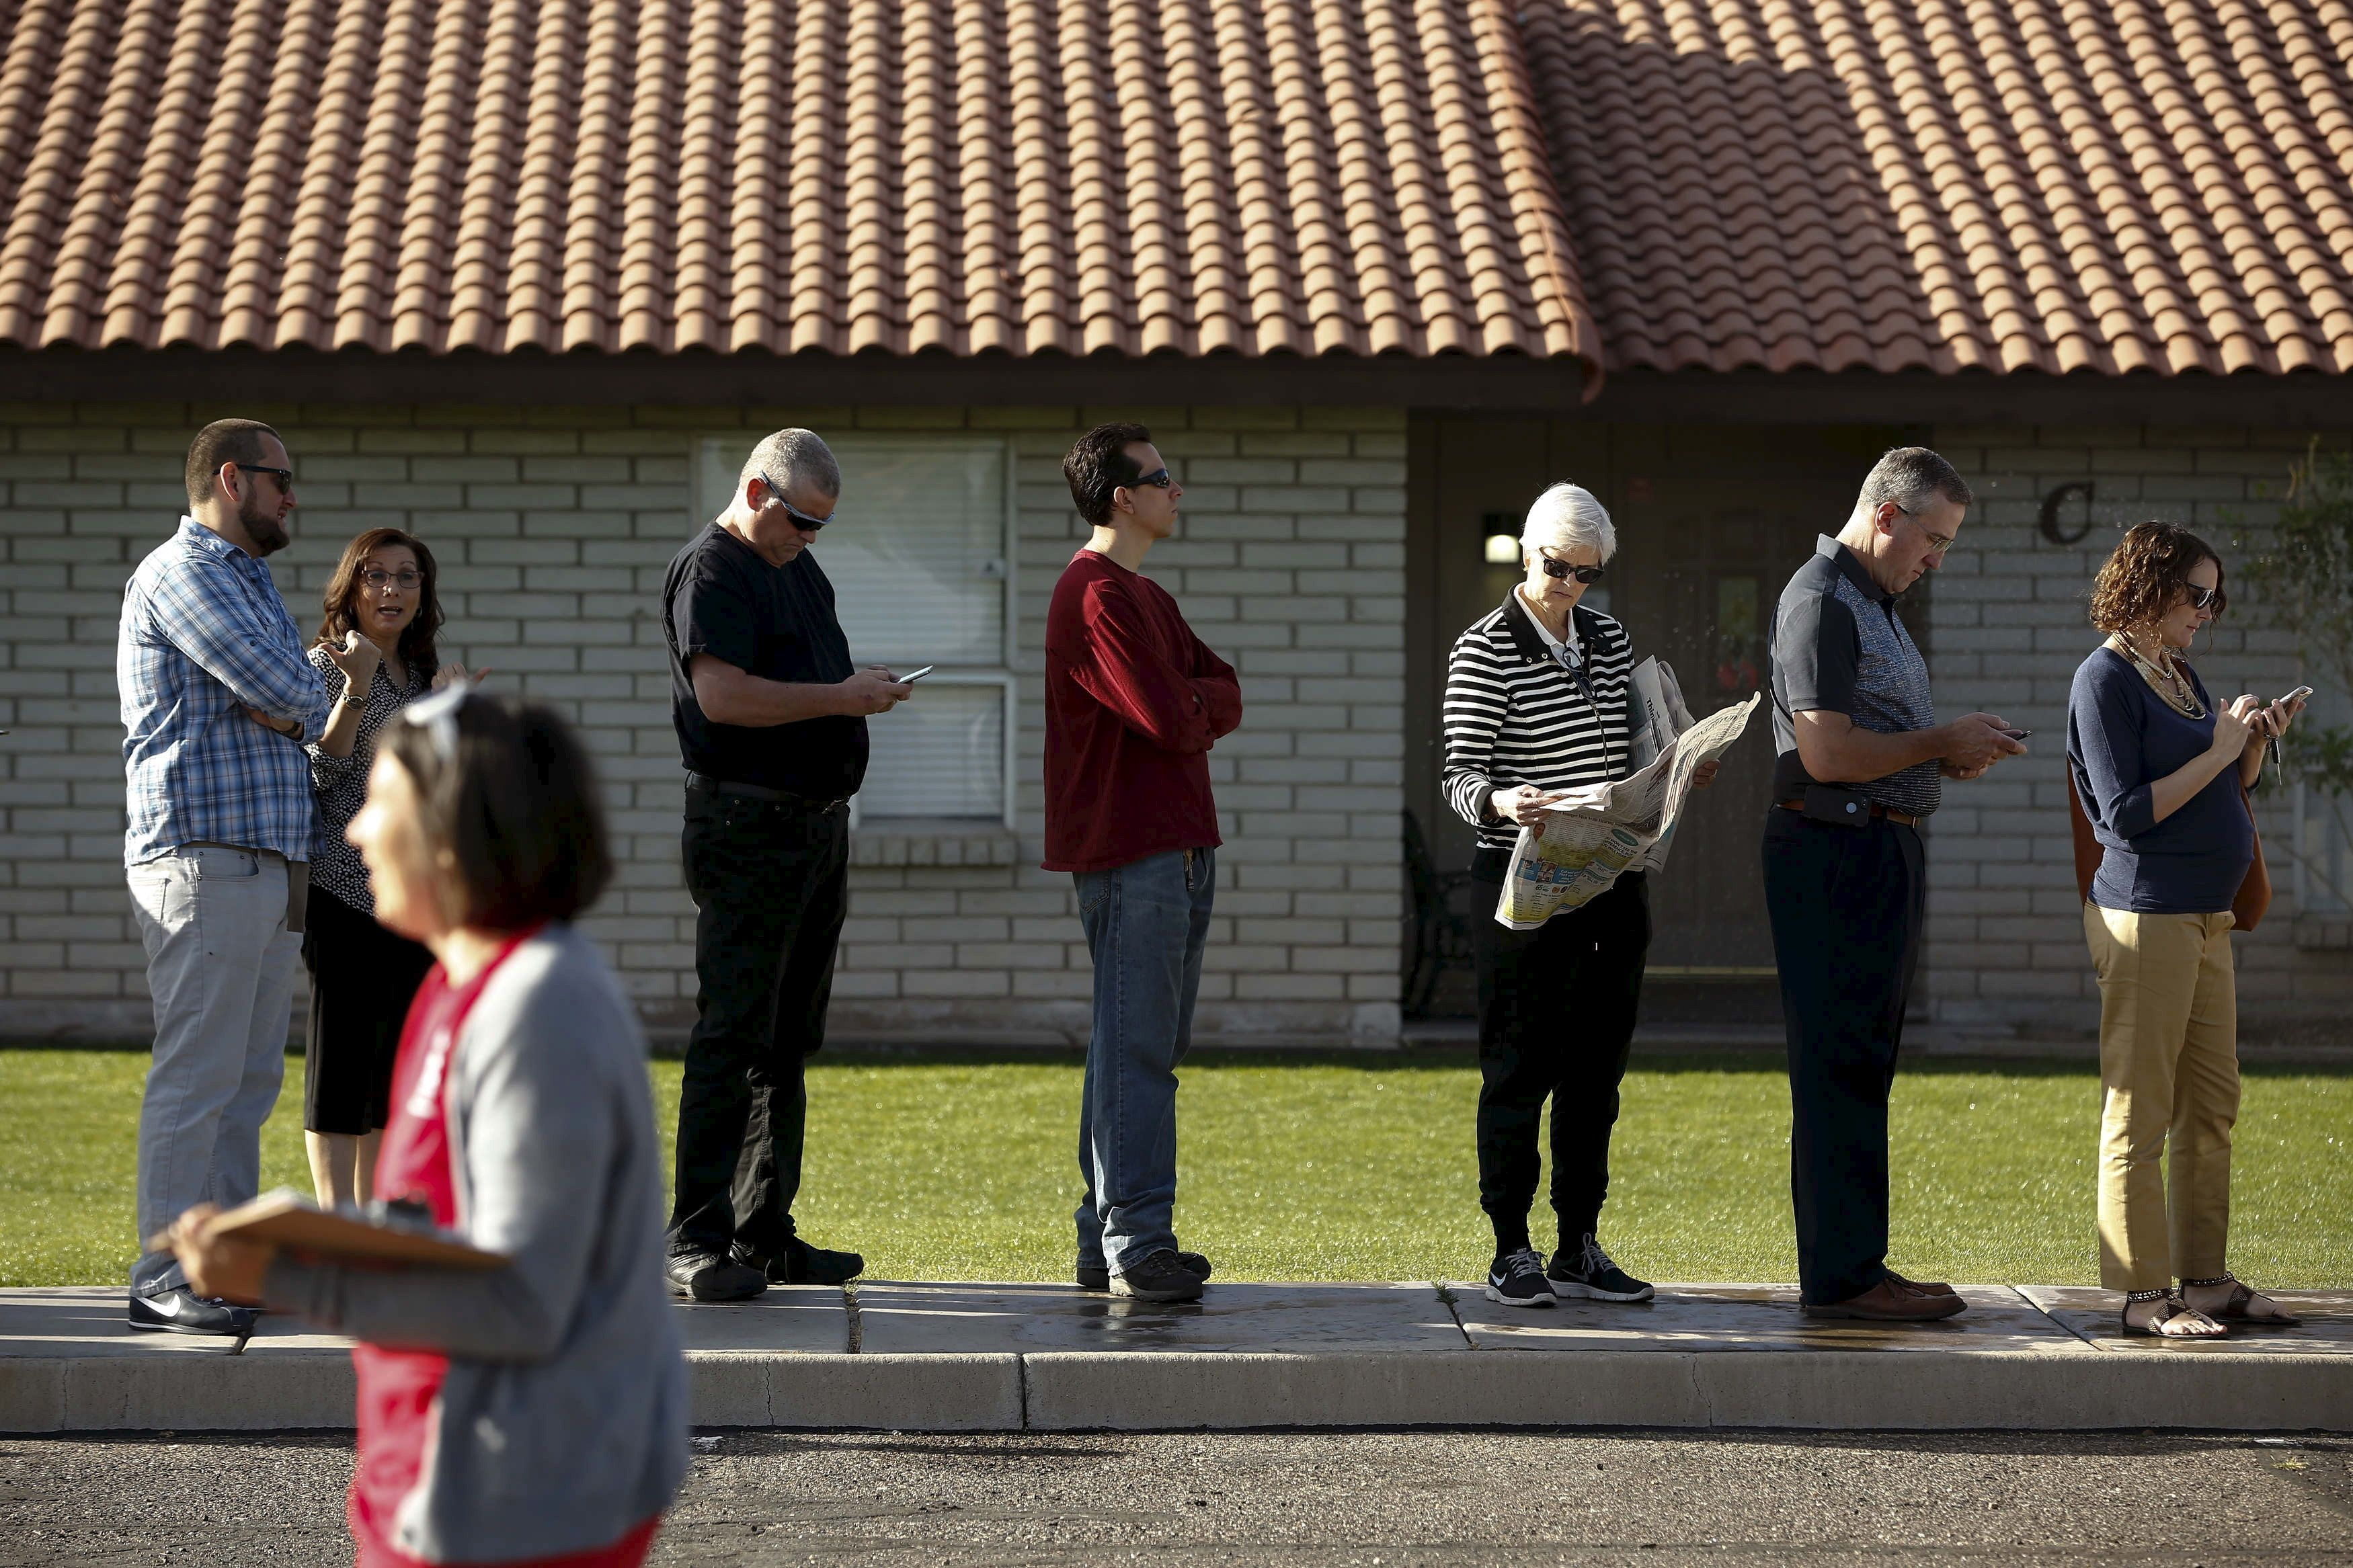 People wait to vote in the U.S. presidential primary election outside a polling site in Glendale, Arizona March 22, 2016. REUTERS/Nancy Wiechec